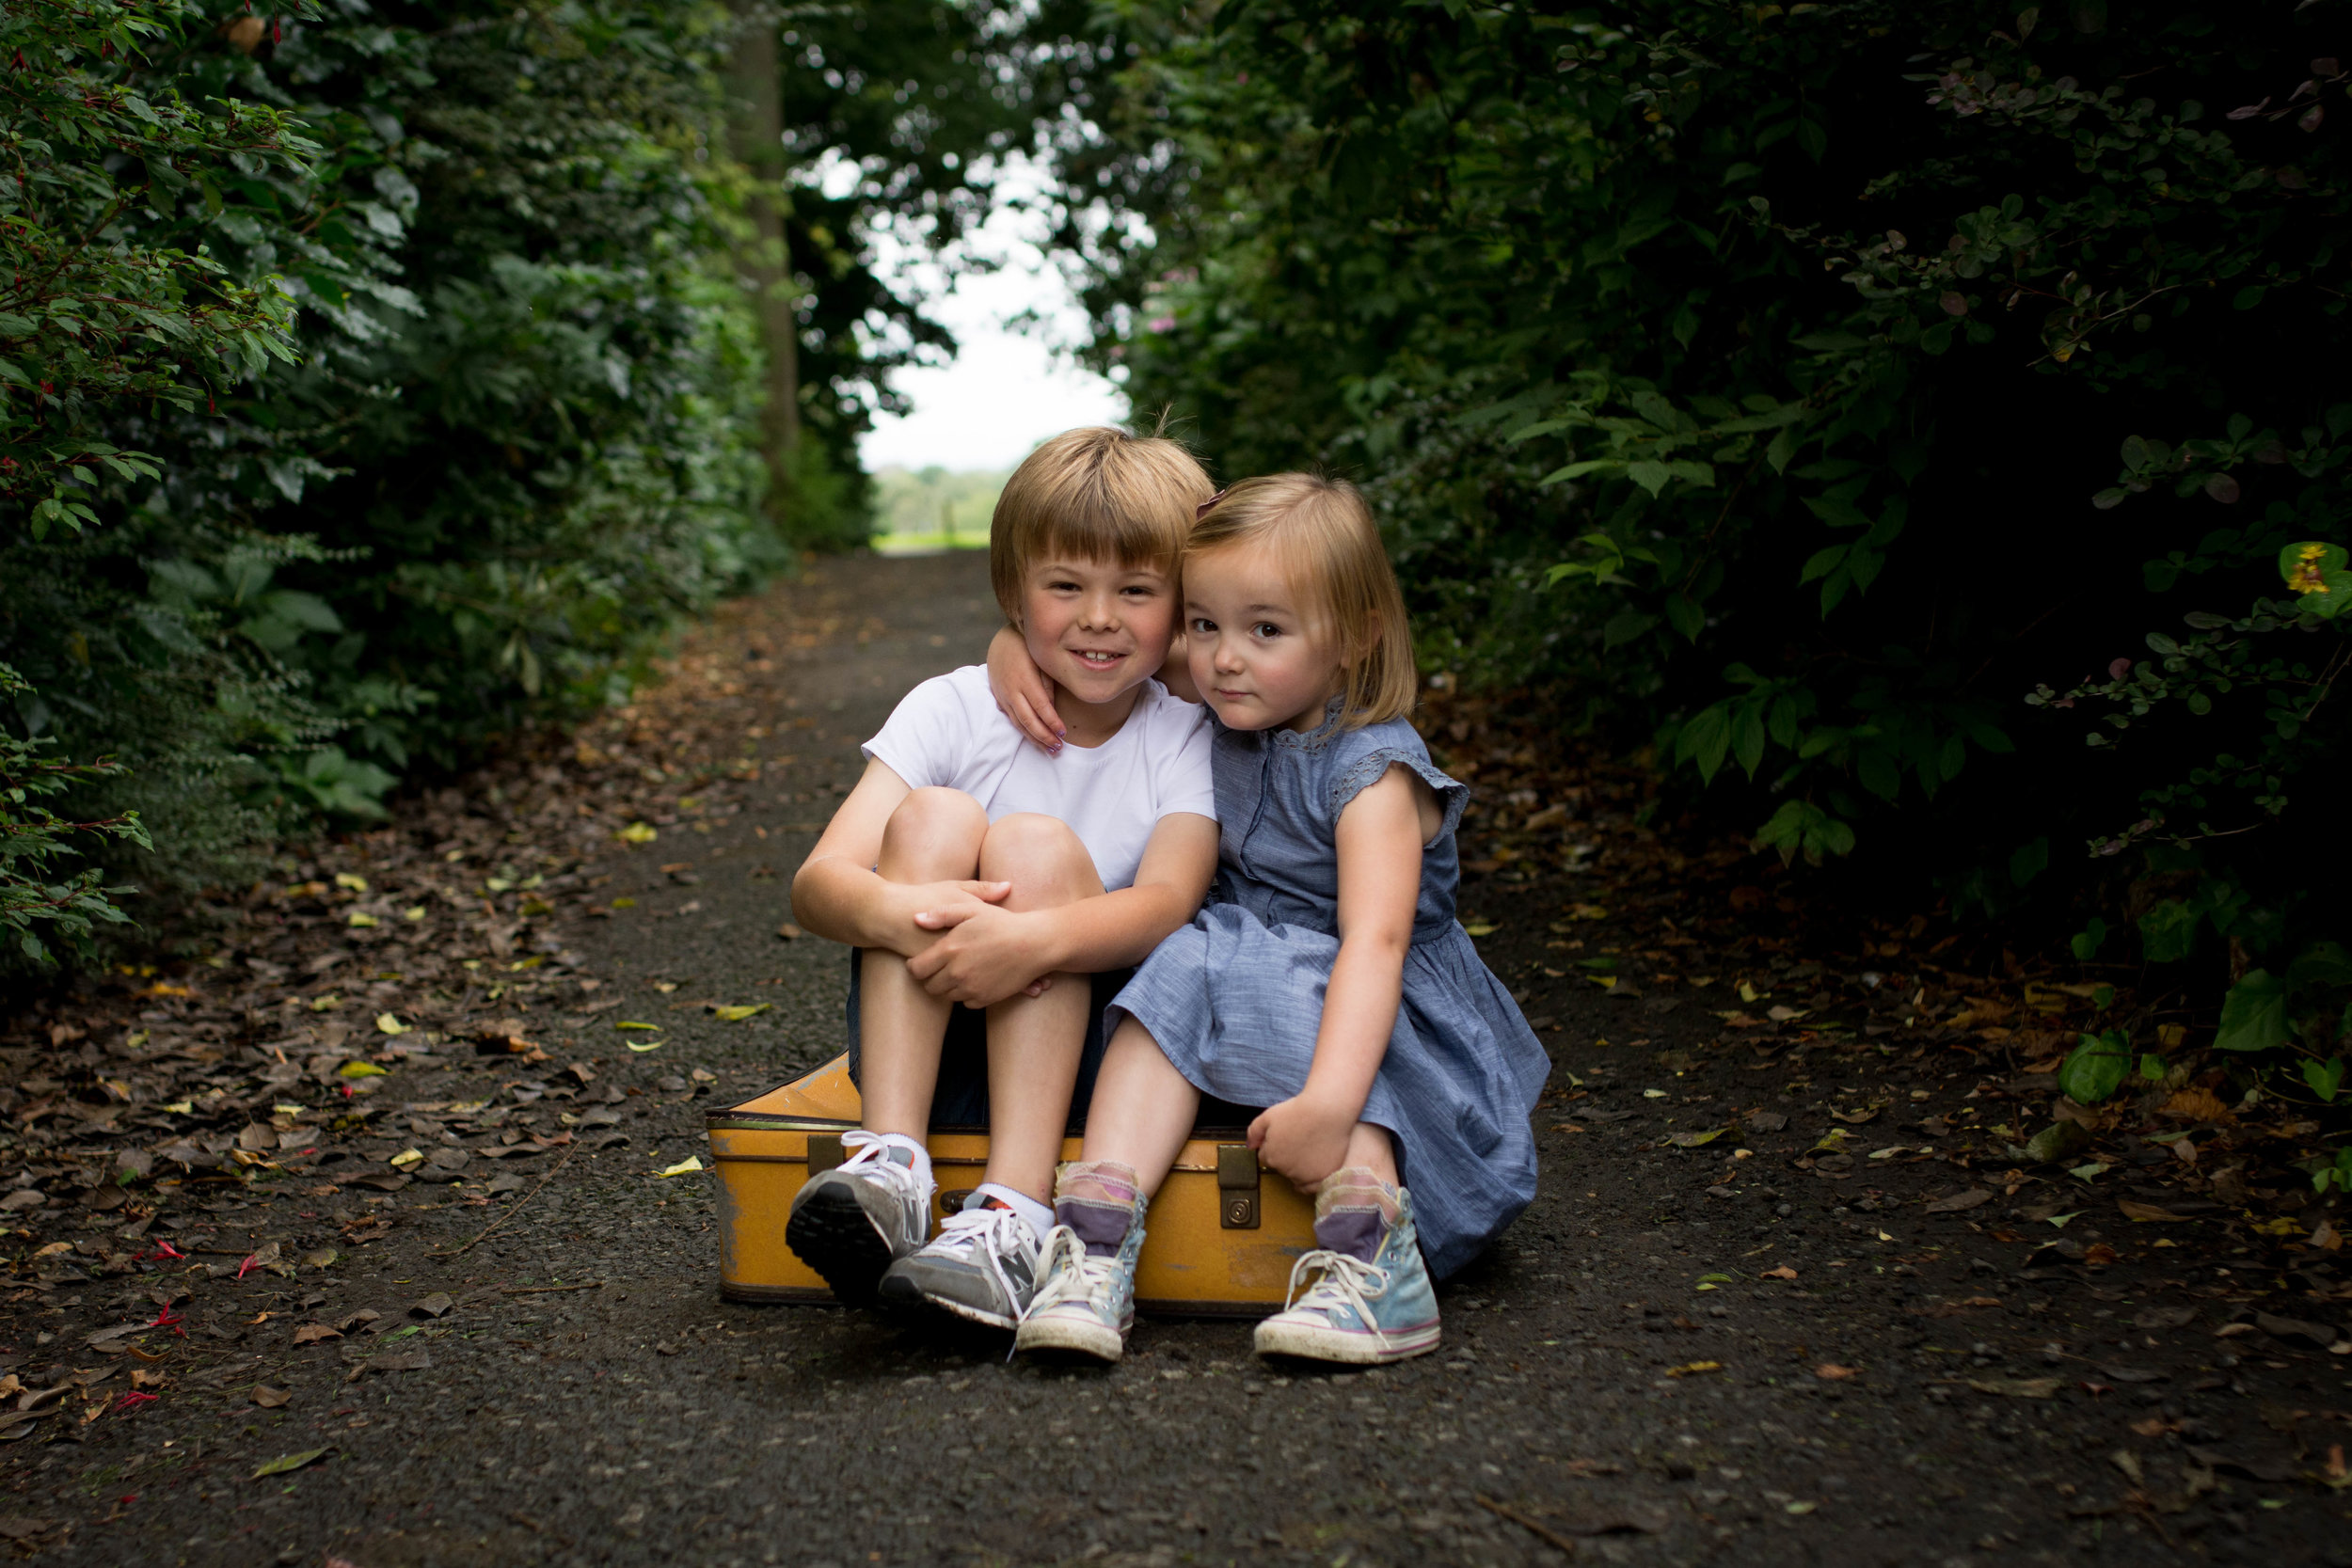 siblings cuddle photography barshaw park paisley renfrewshire